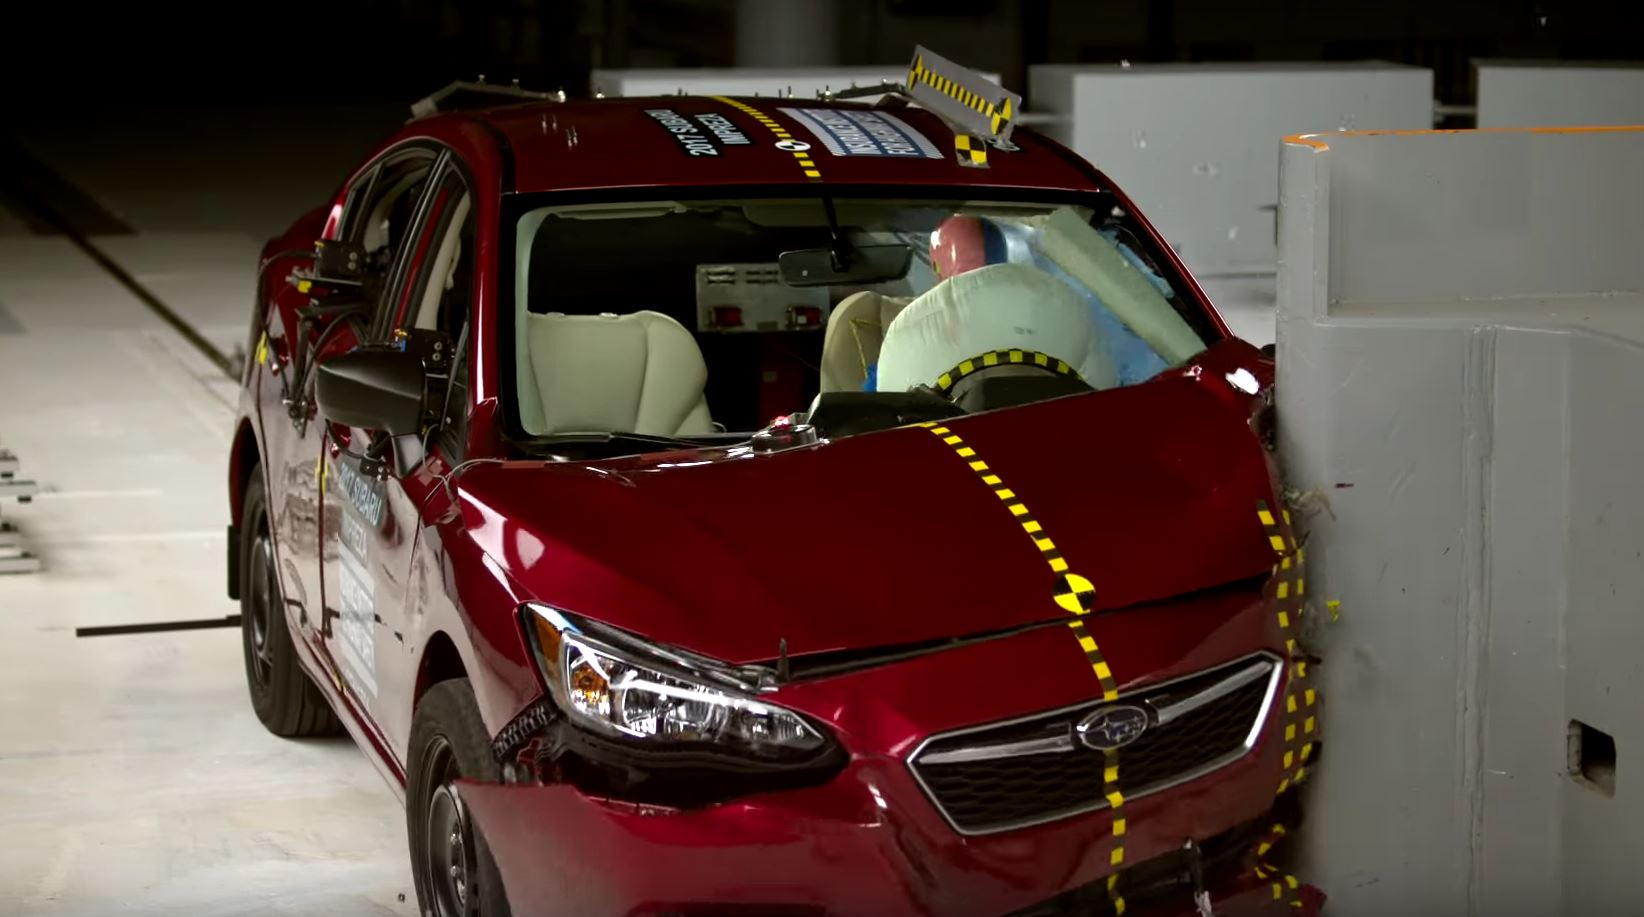 2017 Subaru Impreza Gets IIHS Top Safety Pick+ Rating